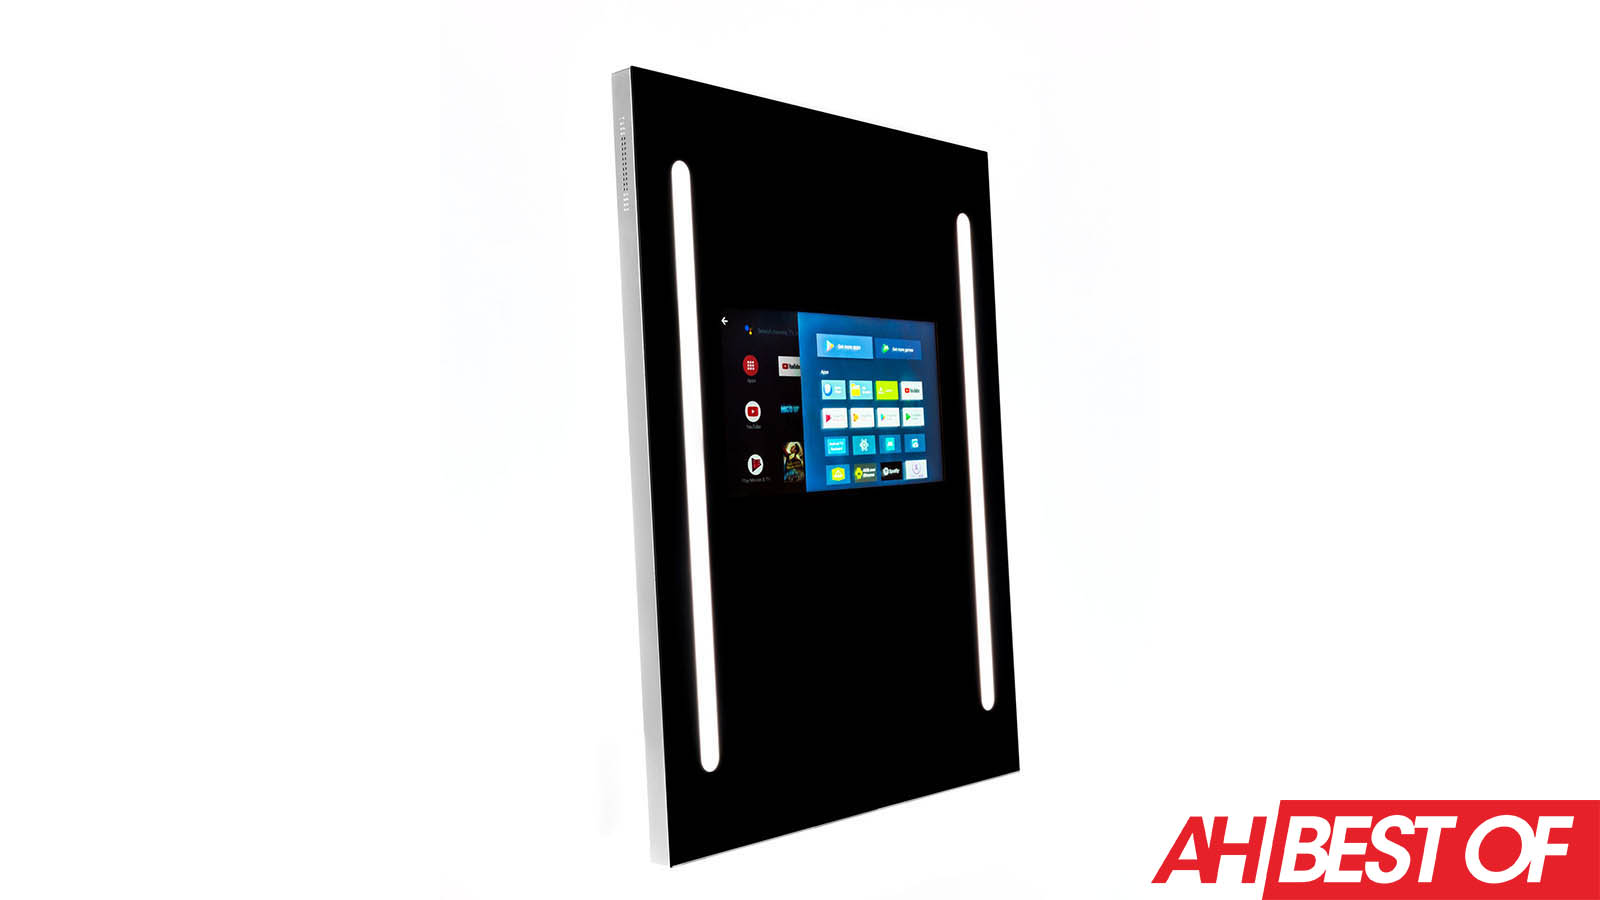 Capstone Connected Home Smart Mirror CES 2019 2 wide best of ah1